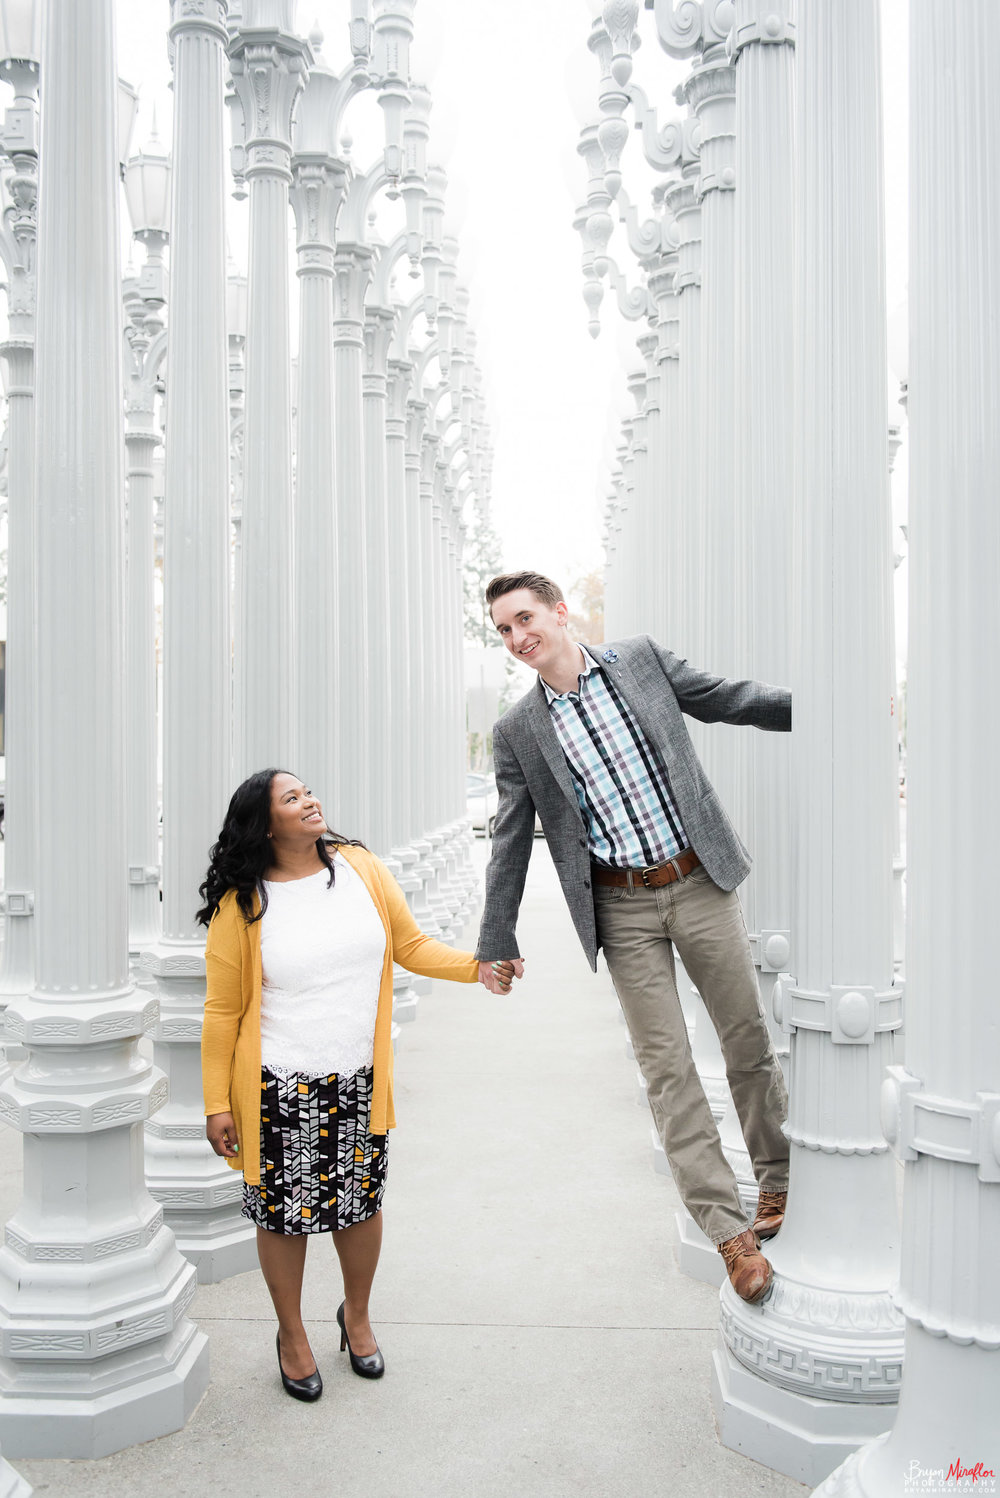 Bryan-Miraflor-Photography-Vanessa-Tommy-LACMA-DTLA-Engagement-Photoshoot-20161210-97.jpg